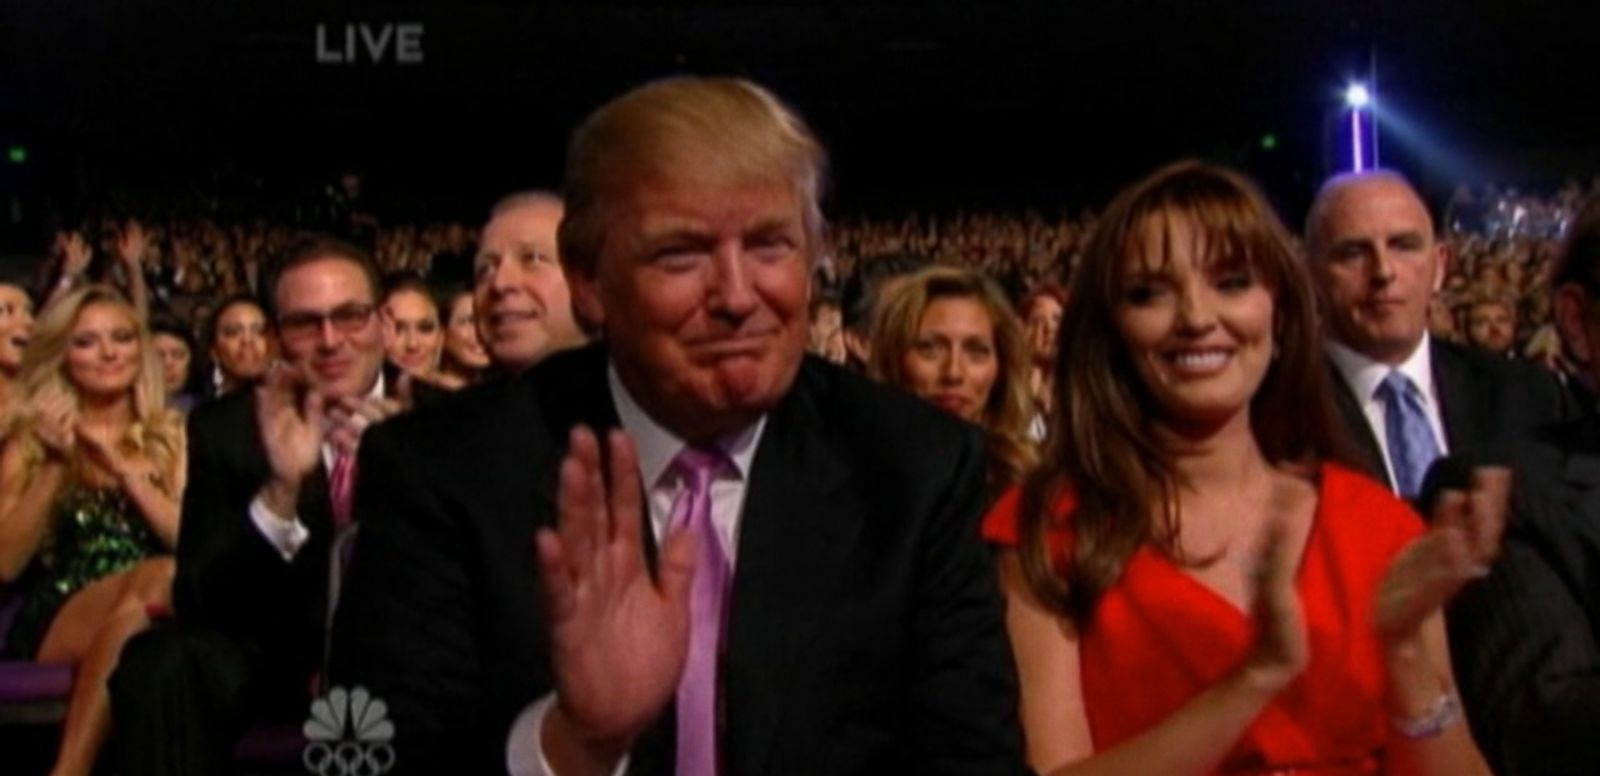 VIDEO: The network said it's ending its business relationship with GOP presidential candidate Donald Trump and will no longer air the Miss USA and Miss Universe pageants.